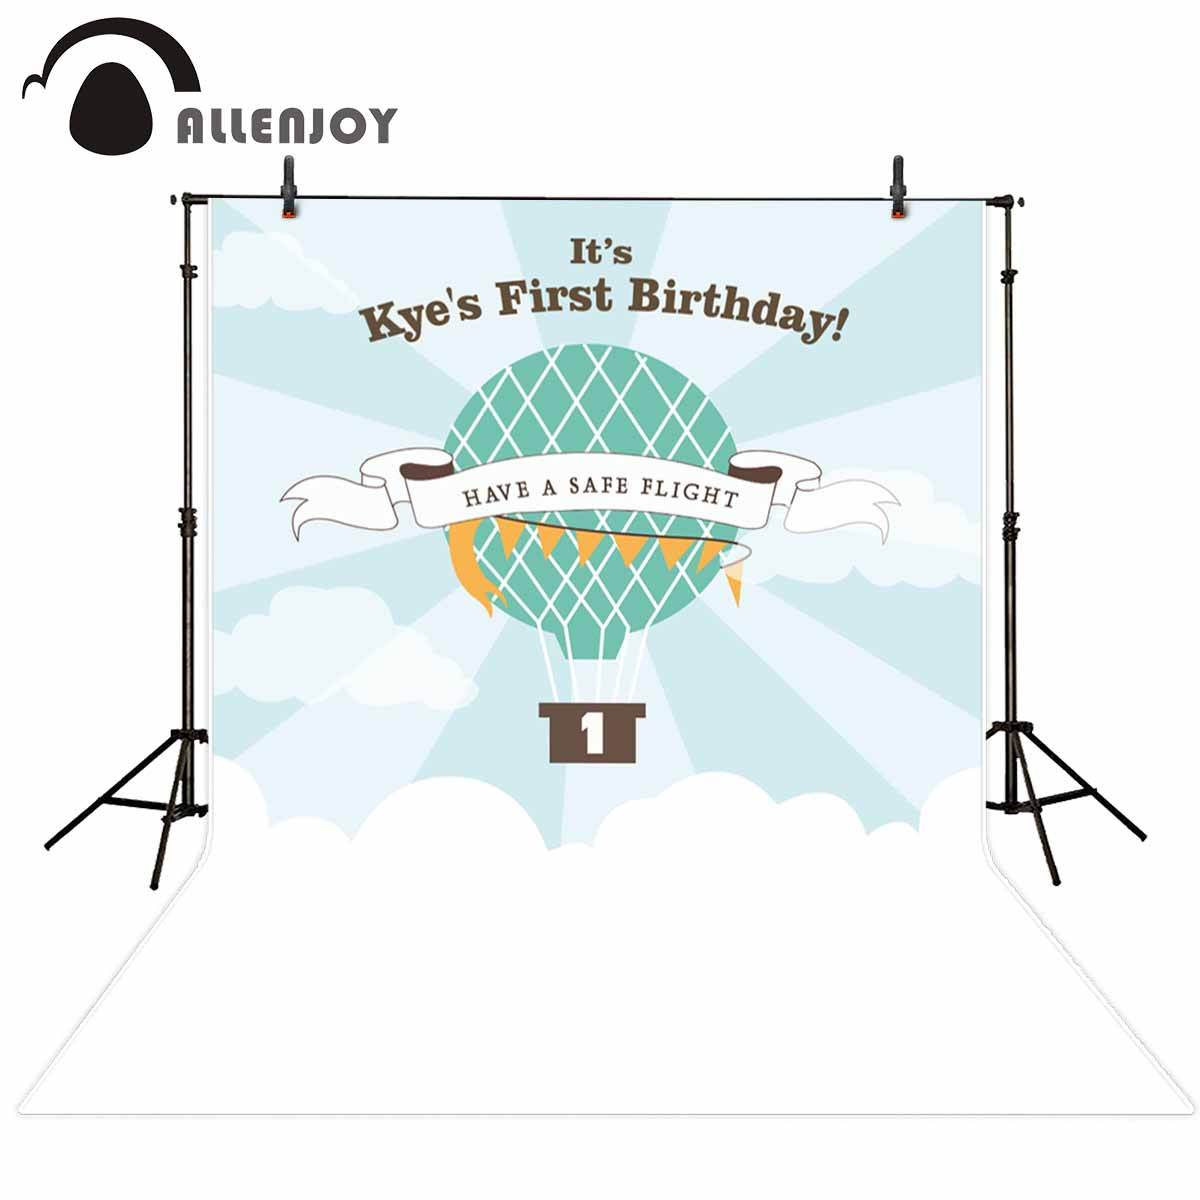 Allenjoy photography backdrops hot air balloon birthday backdrop for baby customize background for photographic studio creative simulaiton standing peacock toy polyethylene